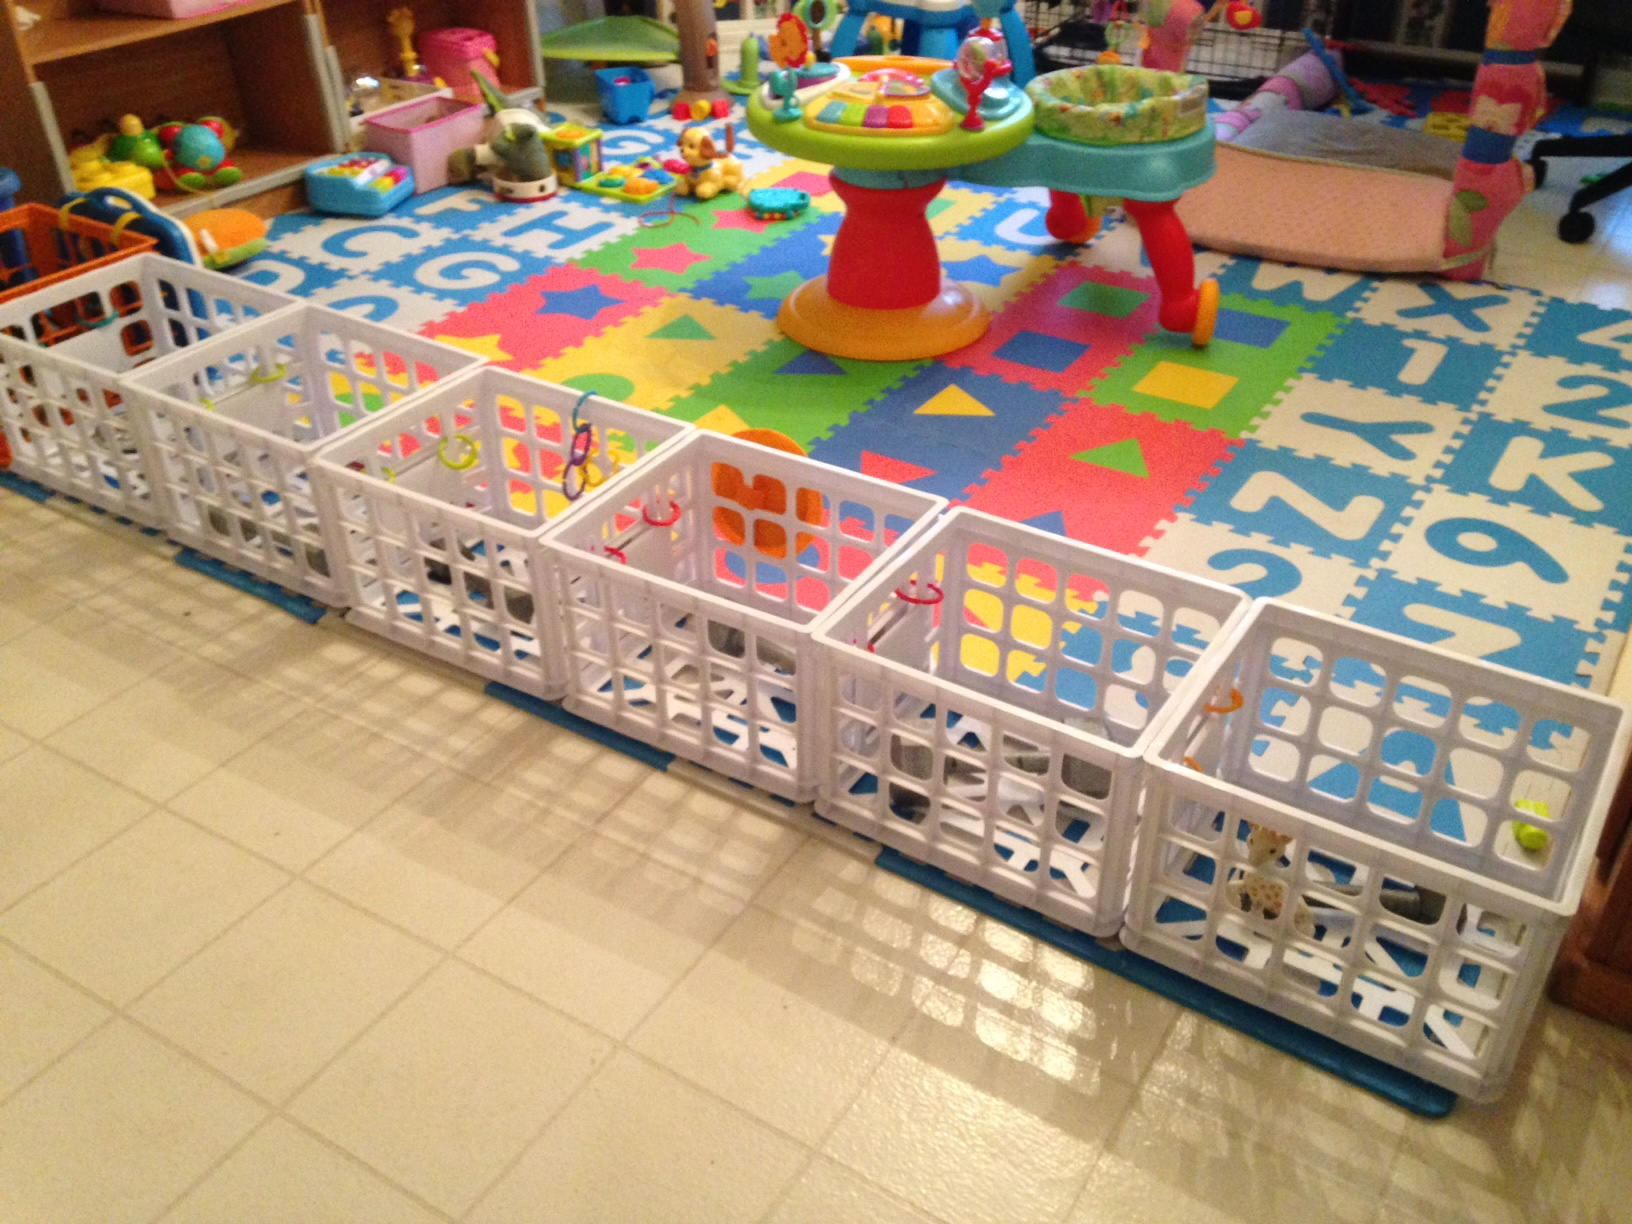 Toddler Barrier Using Plastic Crates